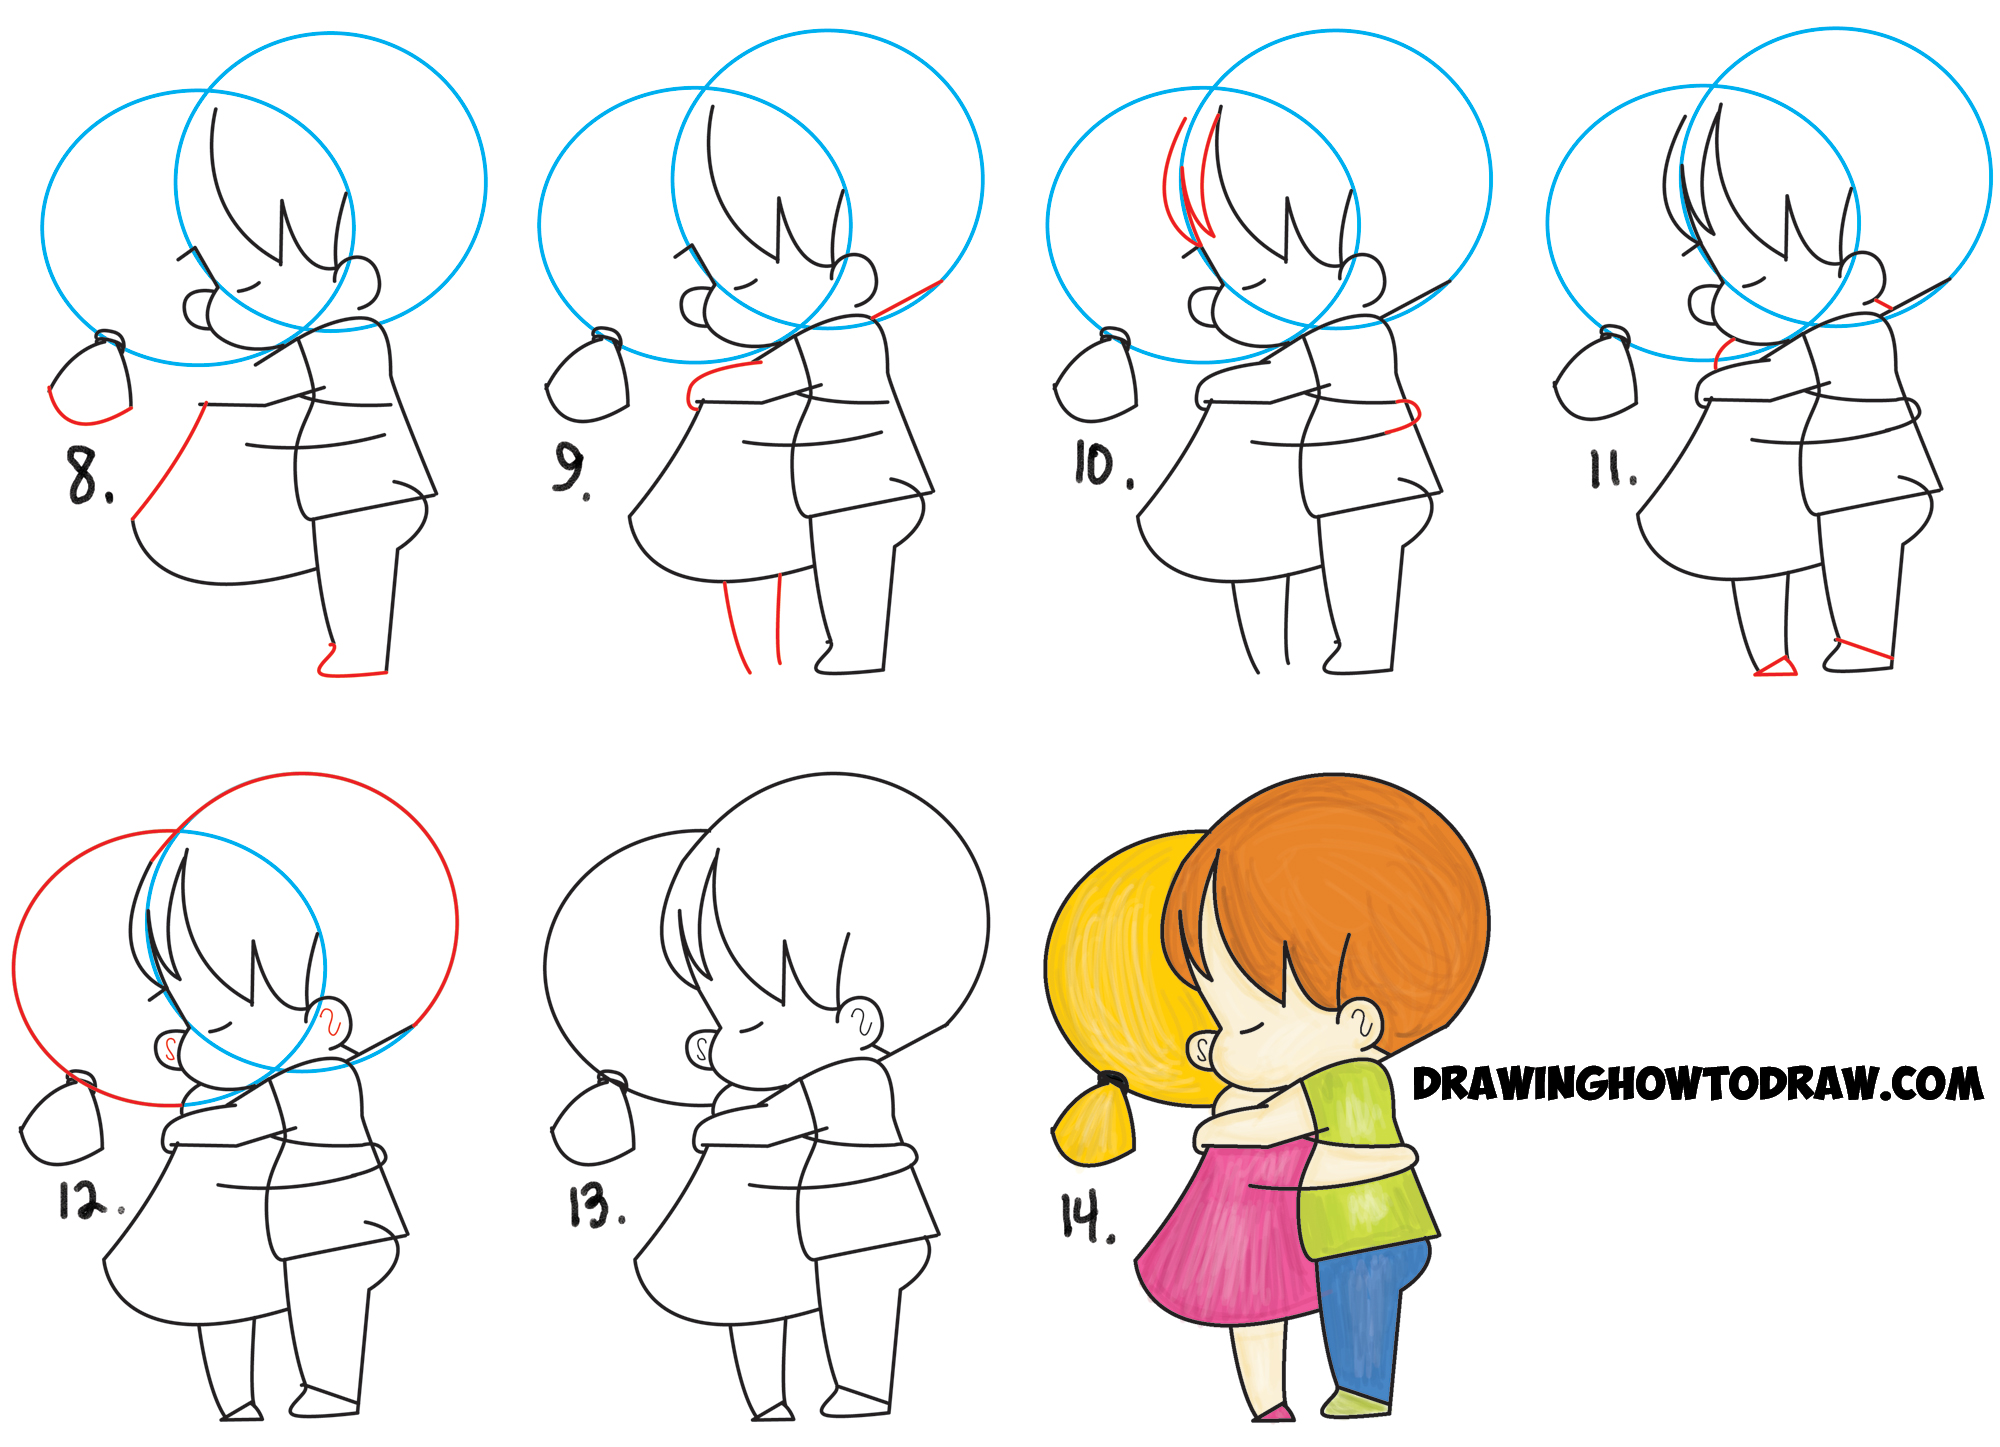 How to Draw Chibi Girl and Boy Hugging - Cute Kawaii ...